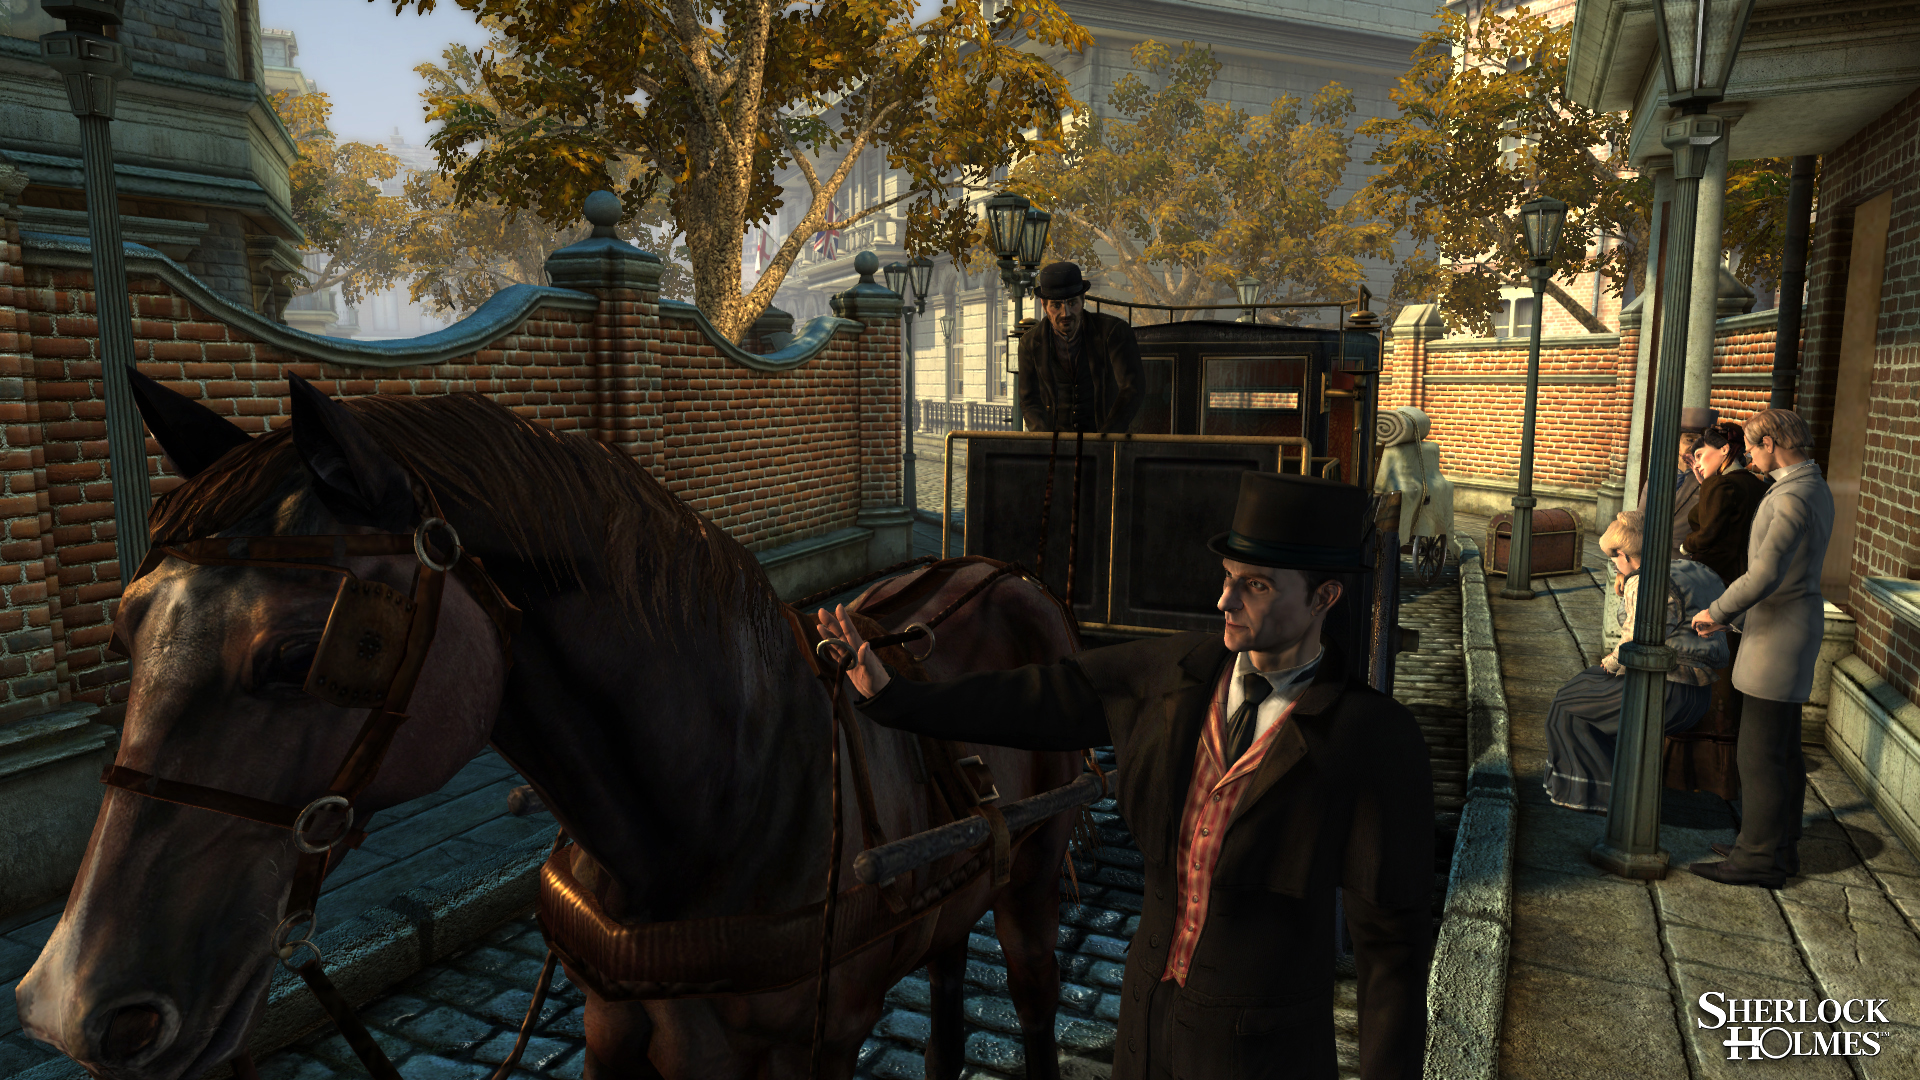 Elementary! New Images of The Testament of Sherlock Holmes ...